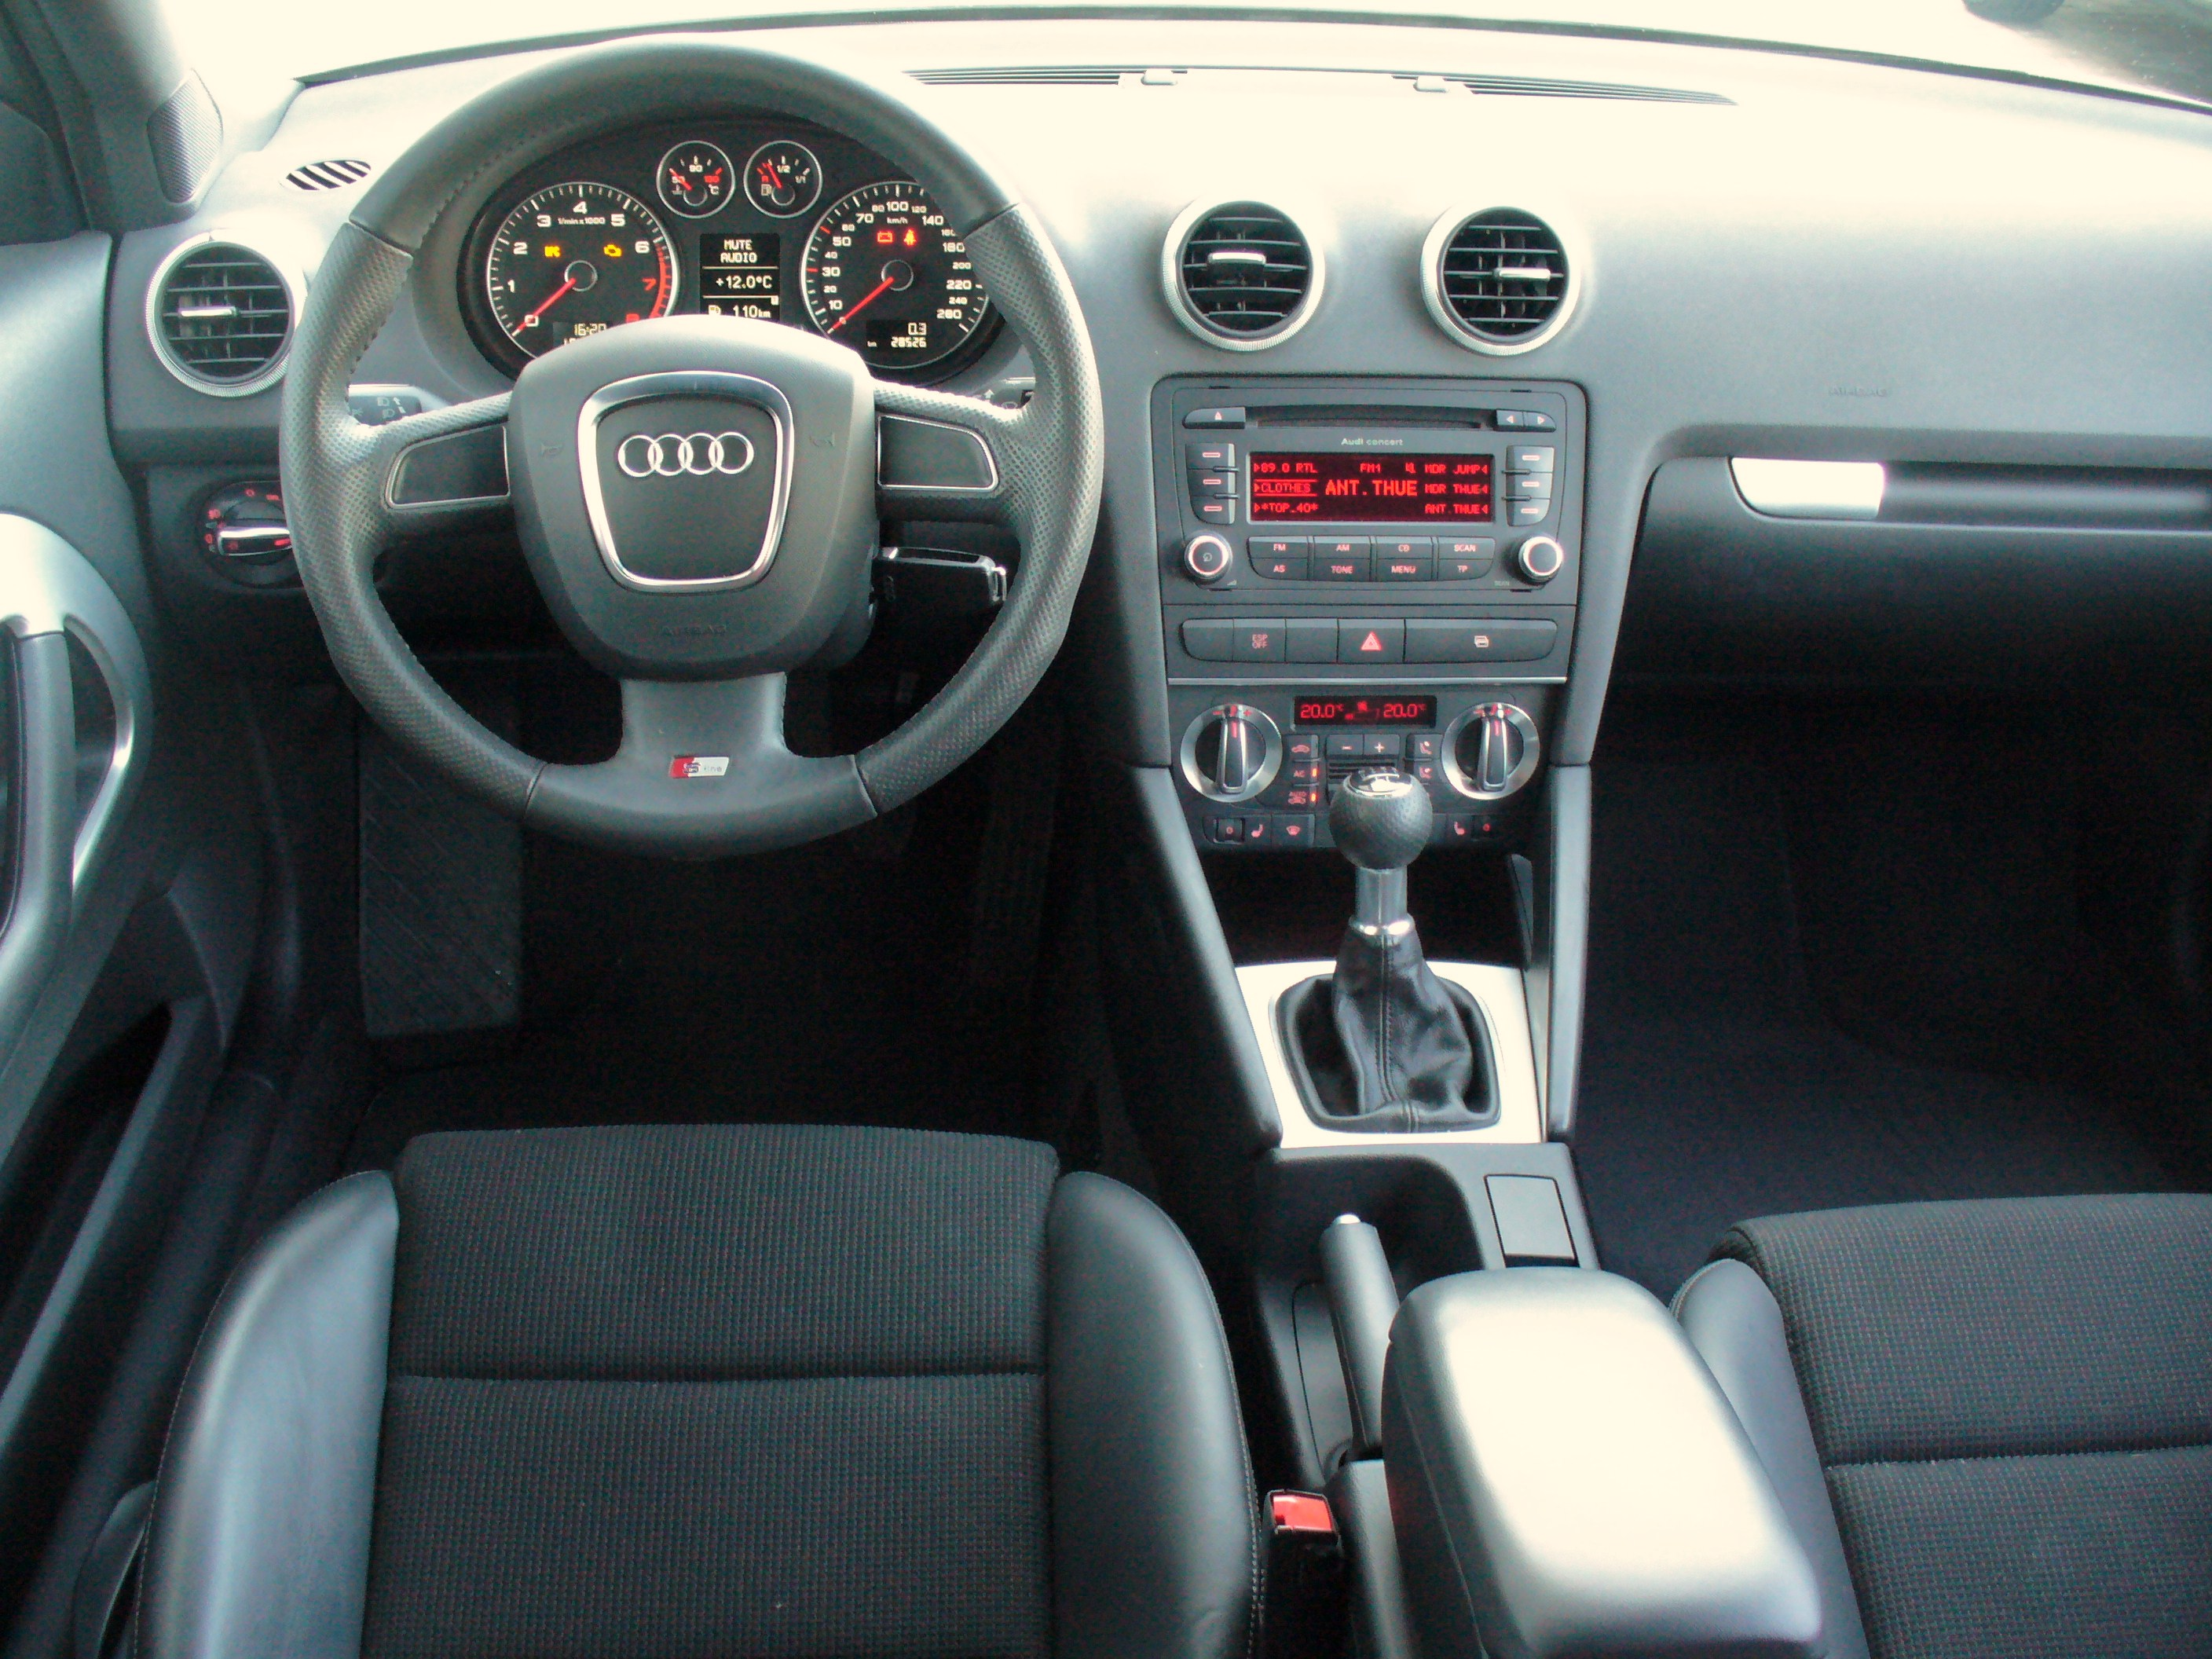 file audi a3 8p 2 facelift s line 1 2 tfsi ibiswei interieur jpg wikimedia commons. Black Bedroom Furniture Sets. Home Design Ideas